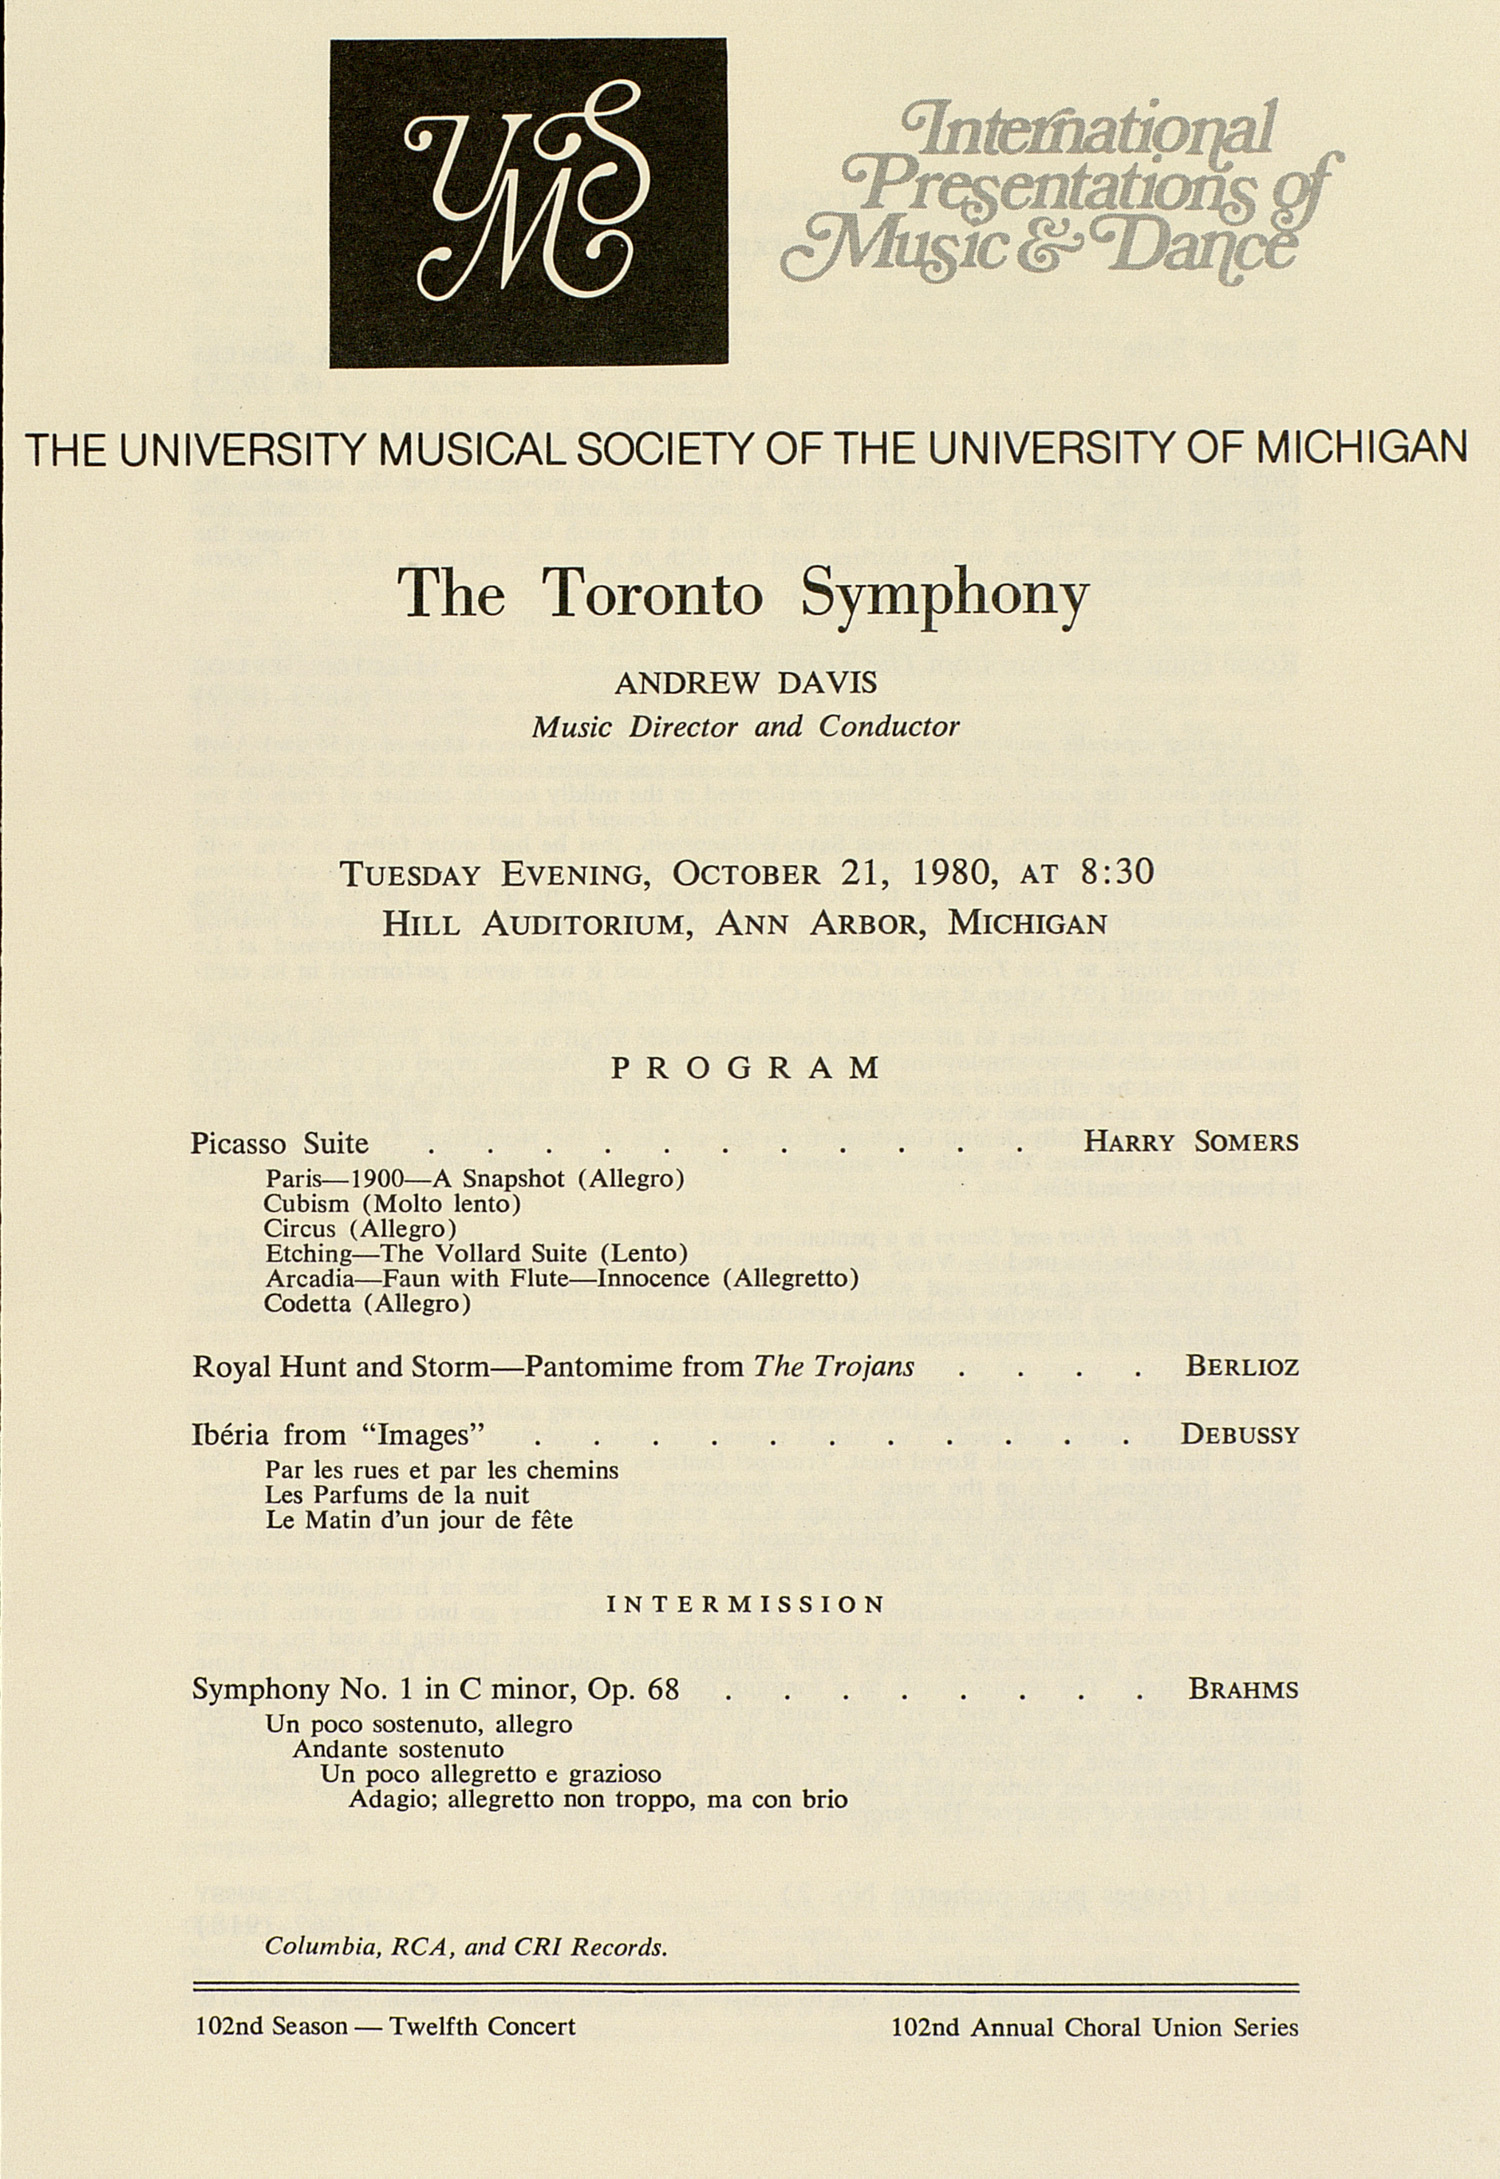 UMS Concert Program, October 21, 1980: International Presentations Of Music & Dance -- The Toronto Symphony image